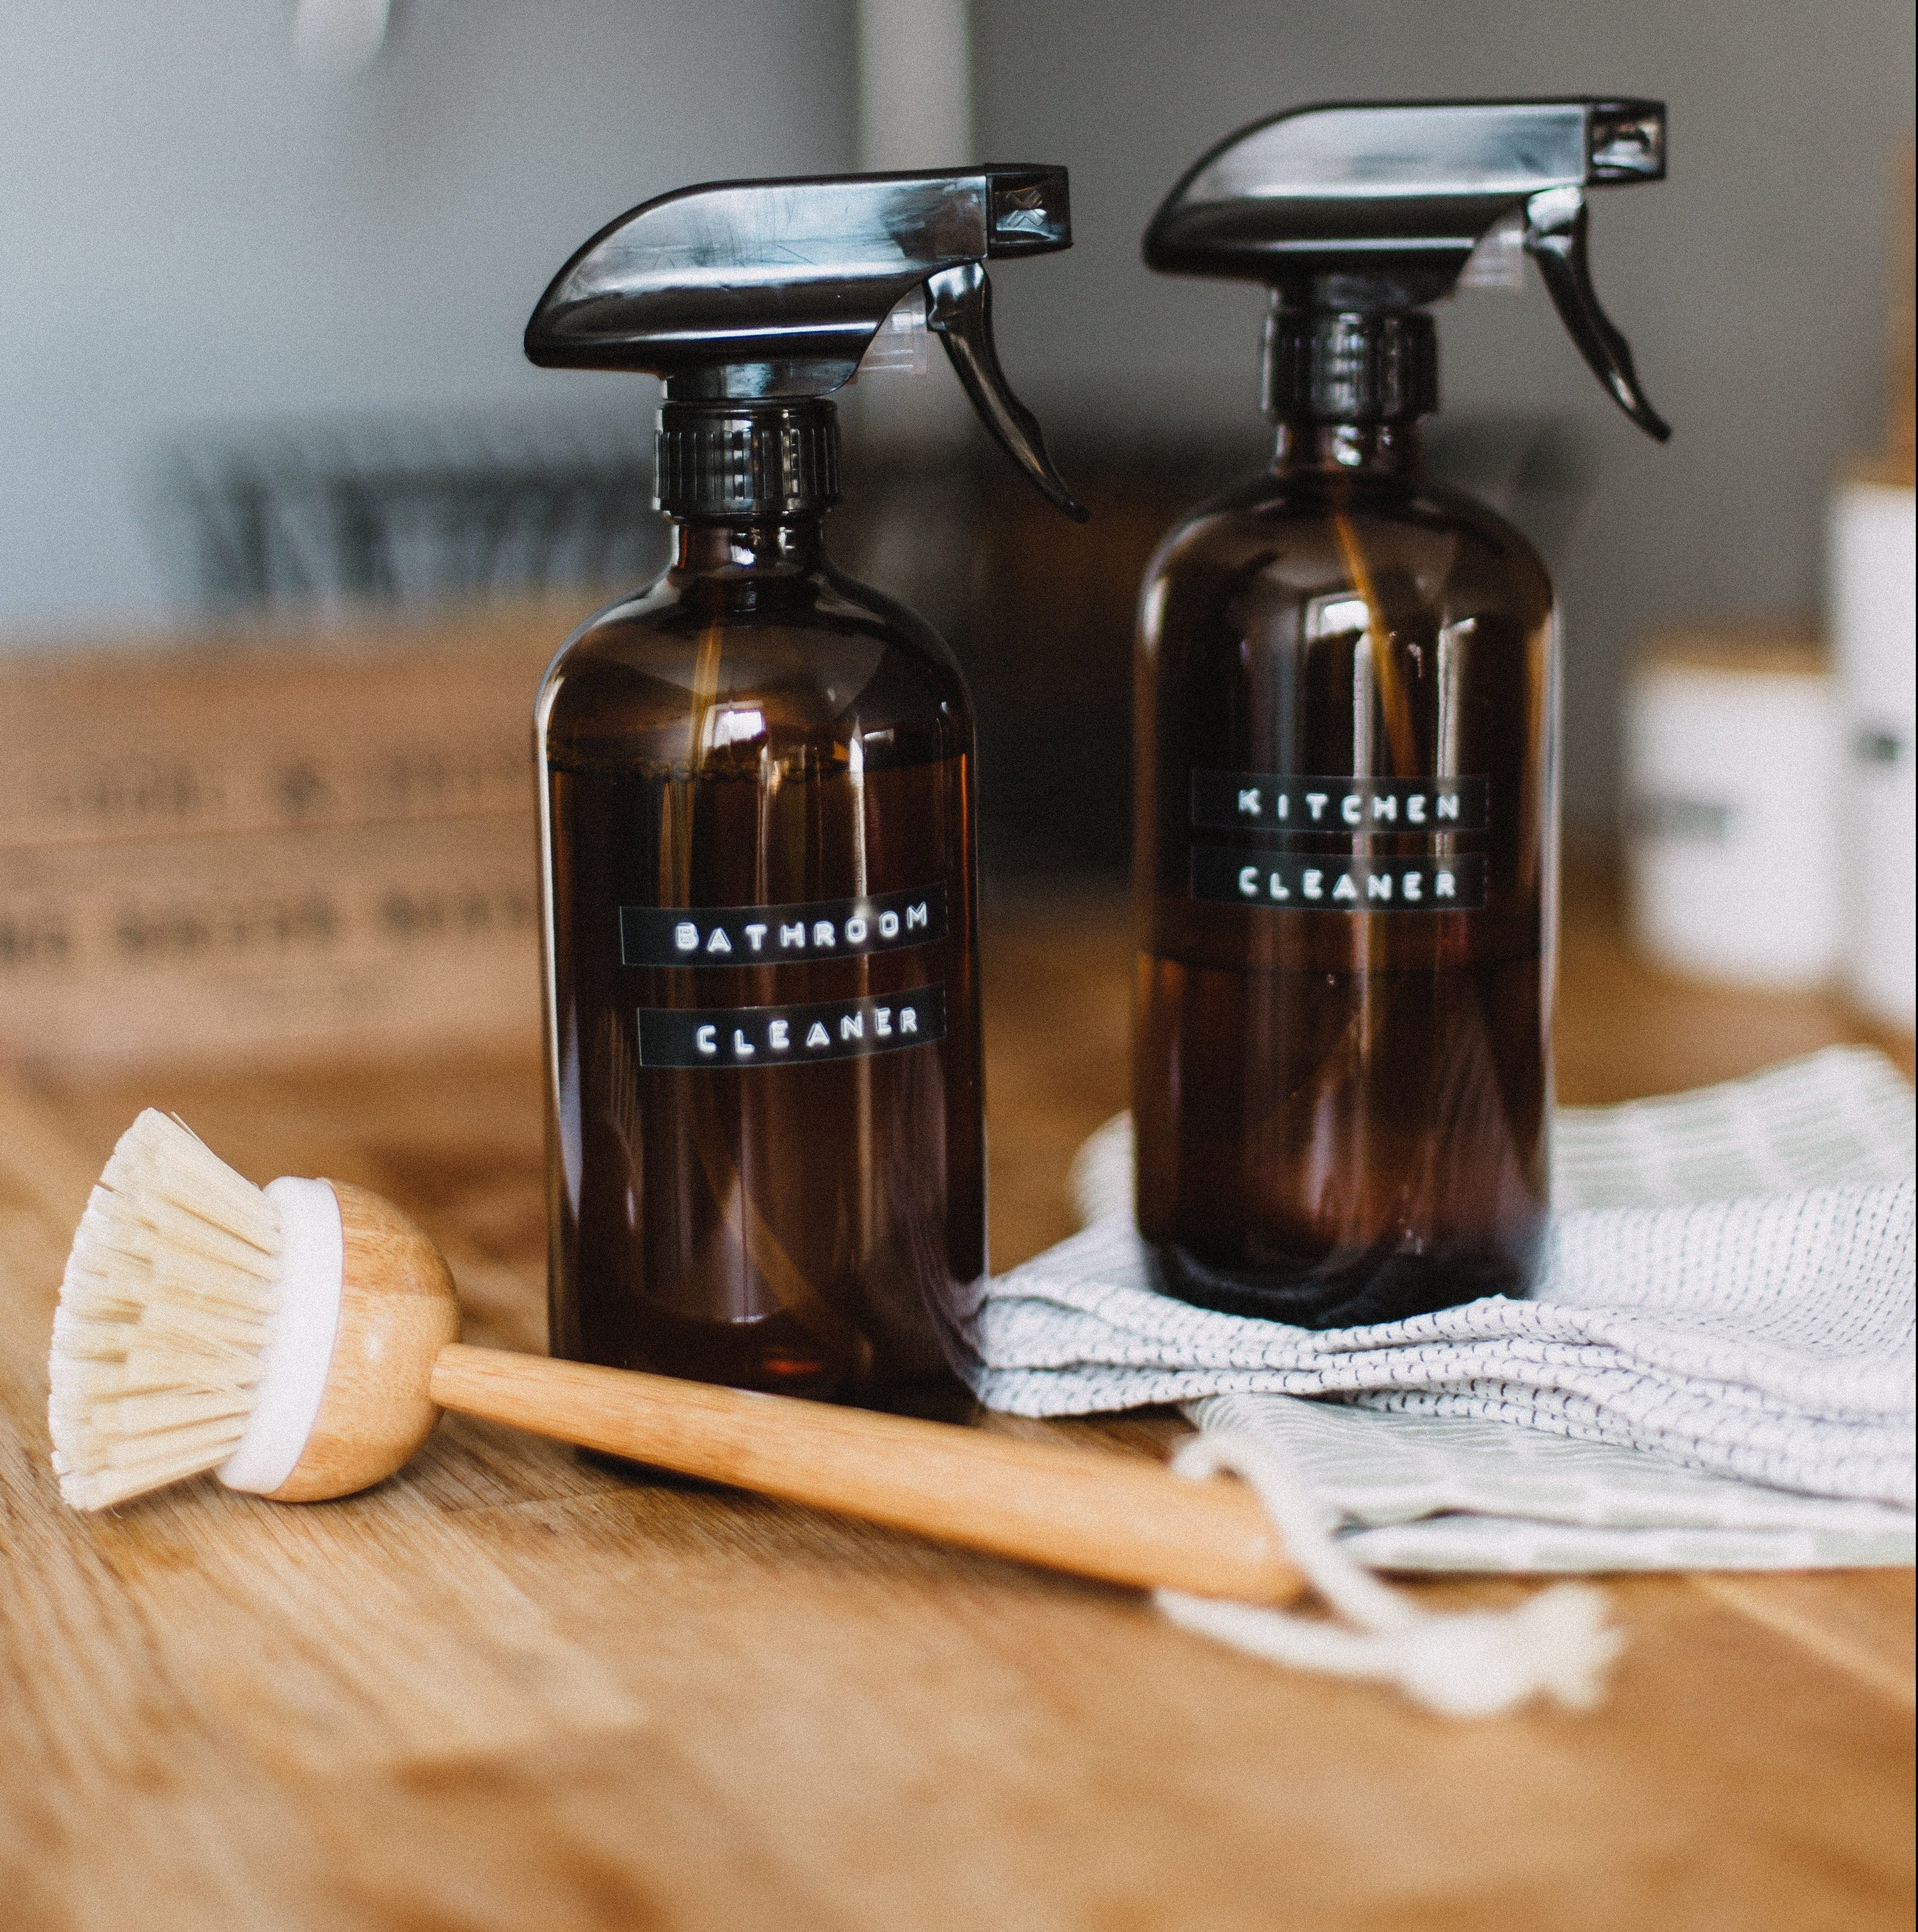 Bathroom and kitchen cleaner in brown spray bottles, buy at the dollar store